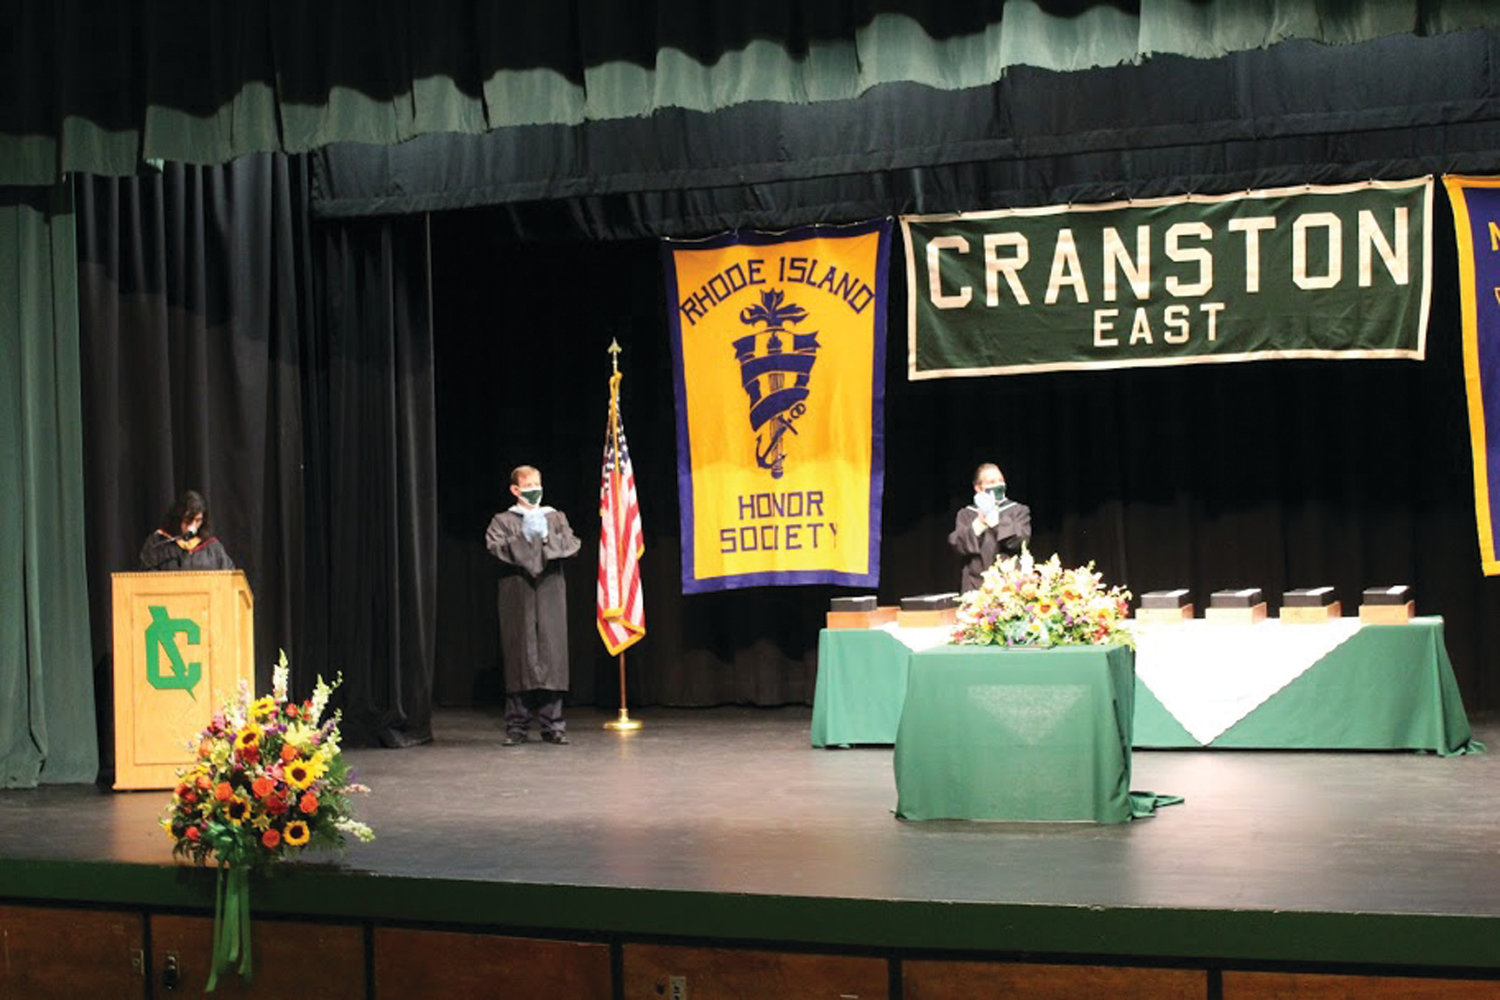 WE'RE SO PROUD OF YOU: Applause and celebratory cheers came for each and every graduate from the members of school administration at Cranston East as names were read aloud and families watched their students cross the stage to receive their diplomas